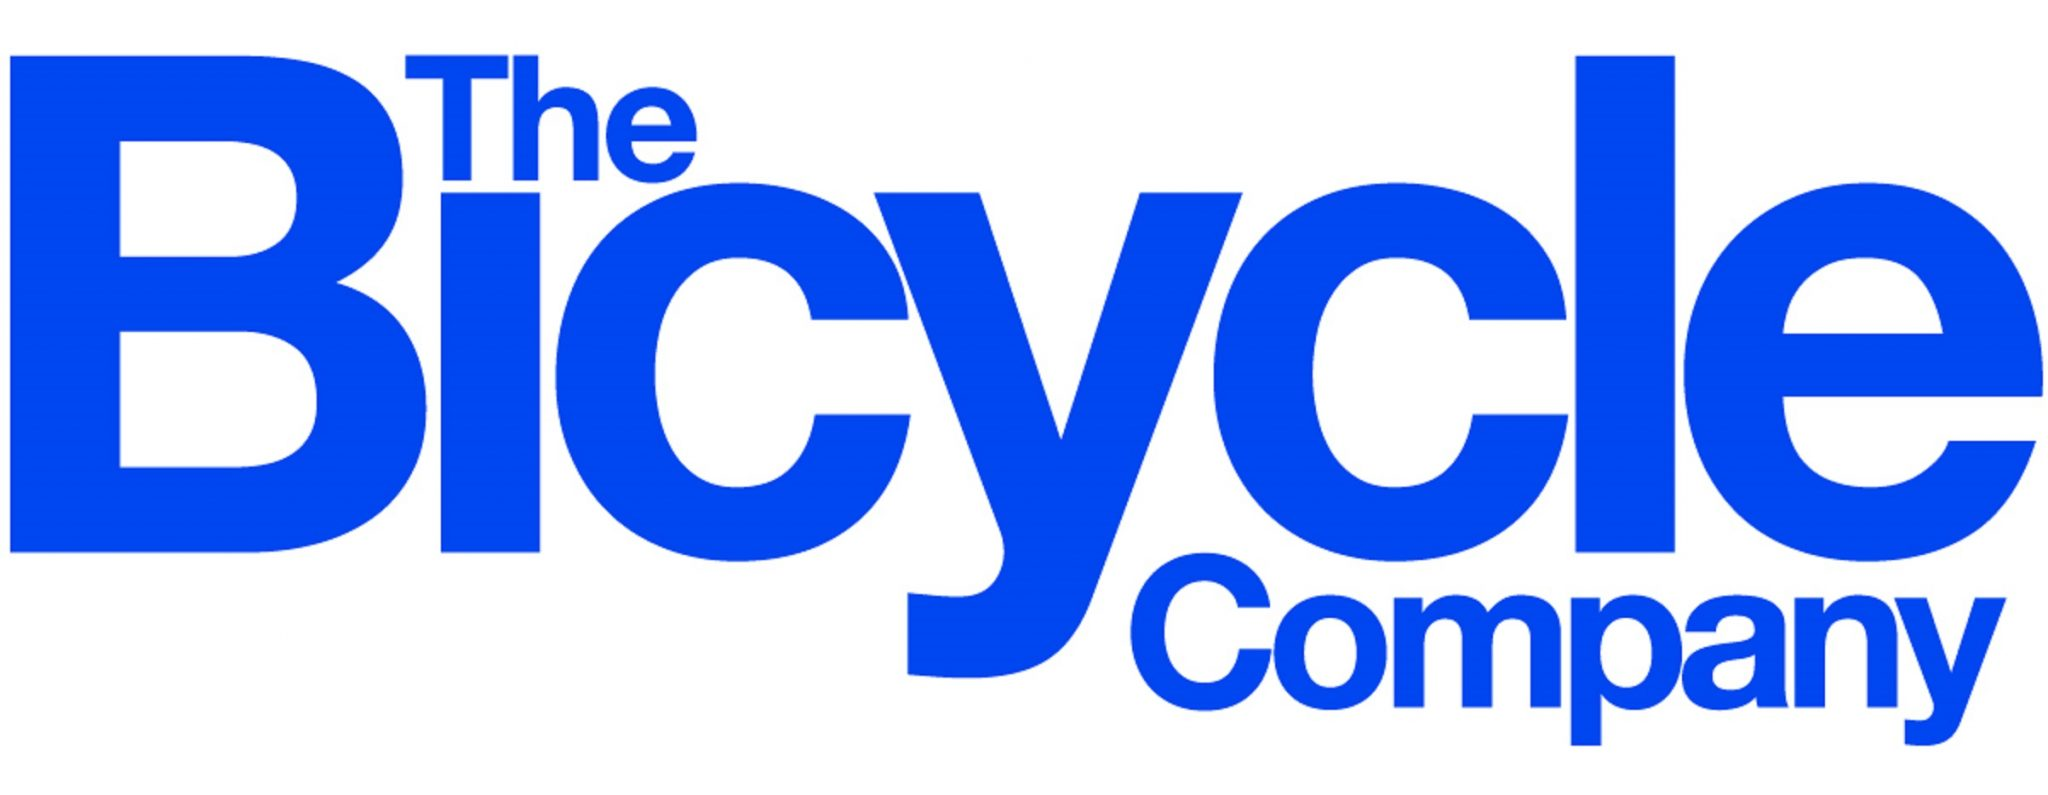 The Bicycle Company